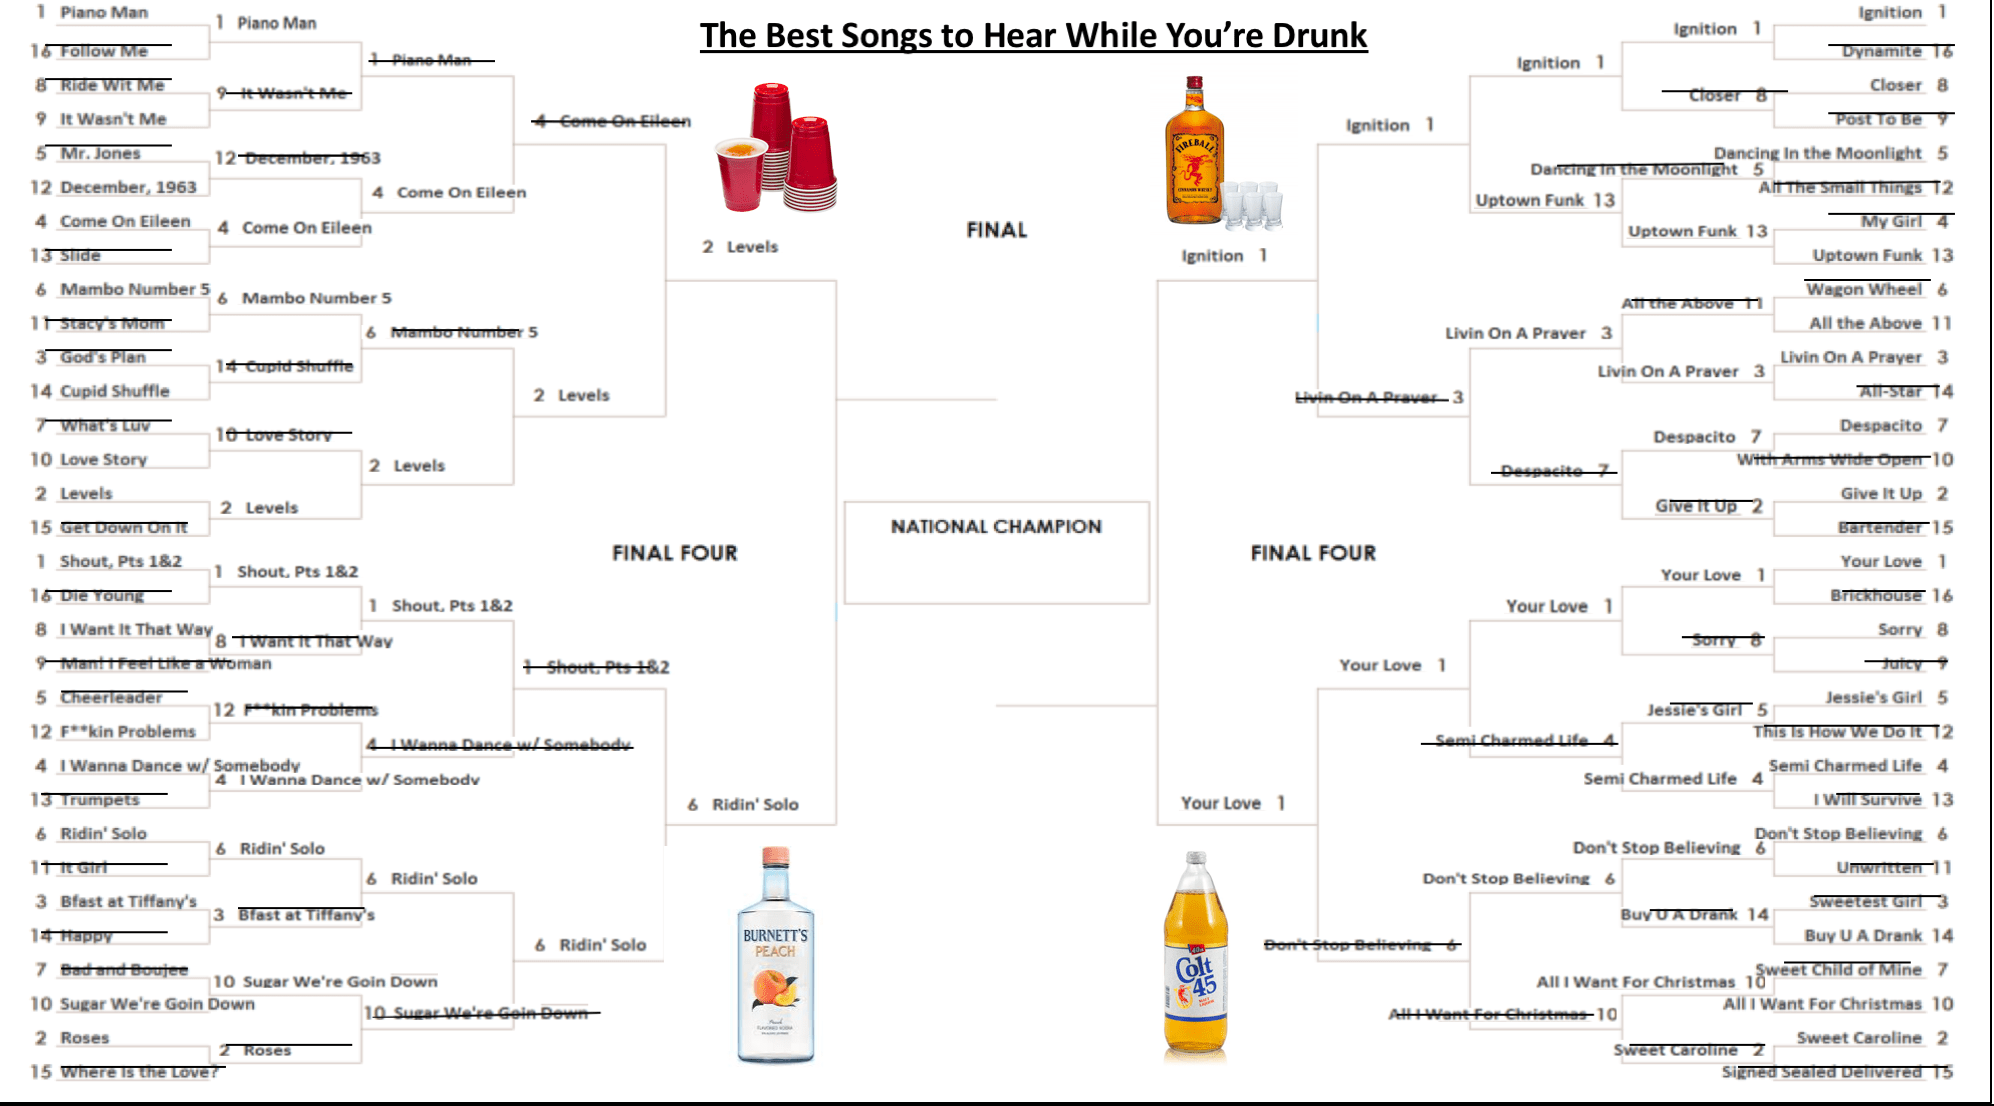 The Best Songs to Hear While You're Drunk: Final Four